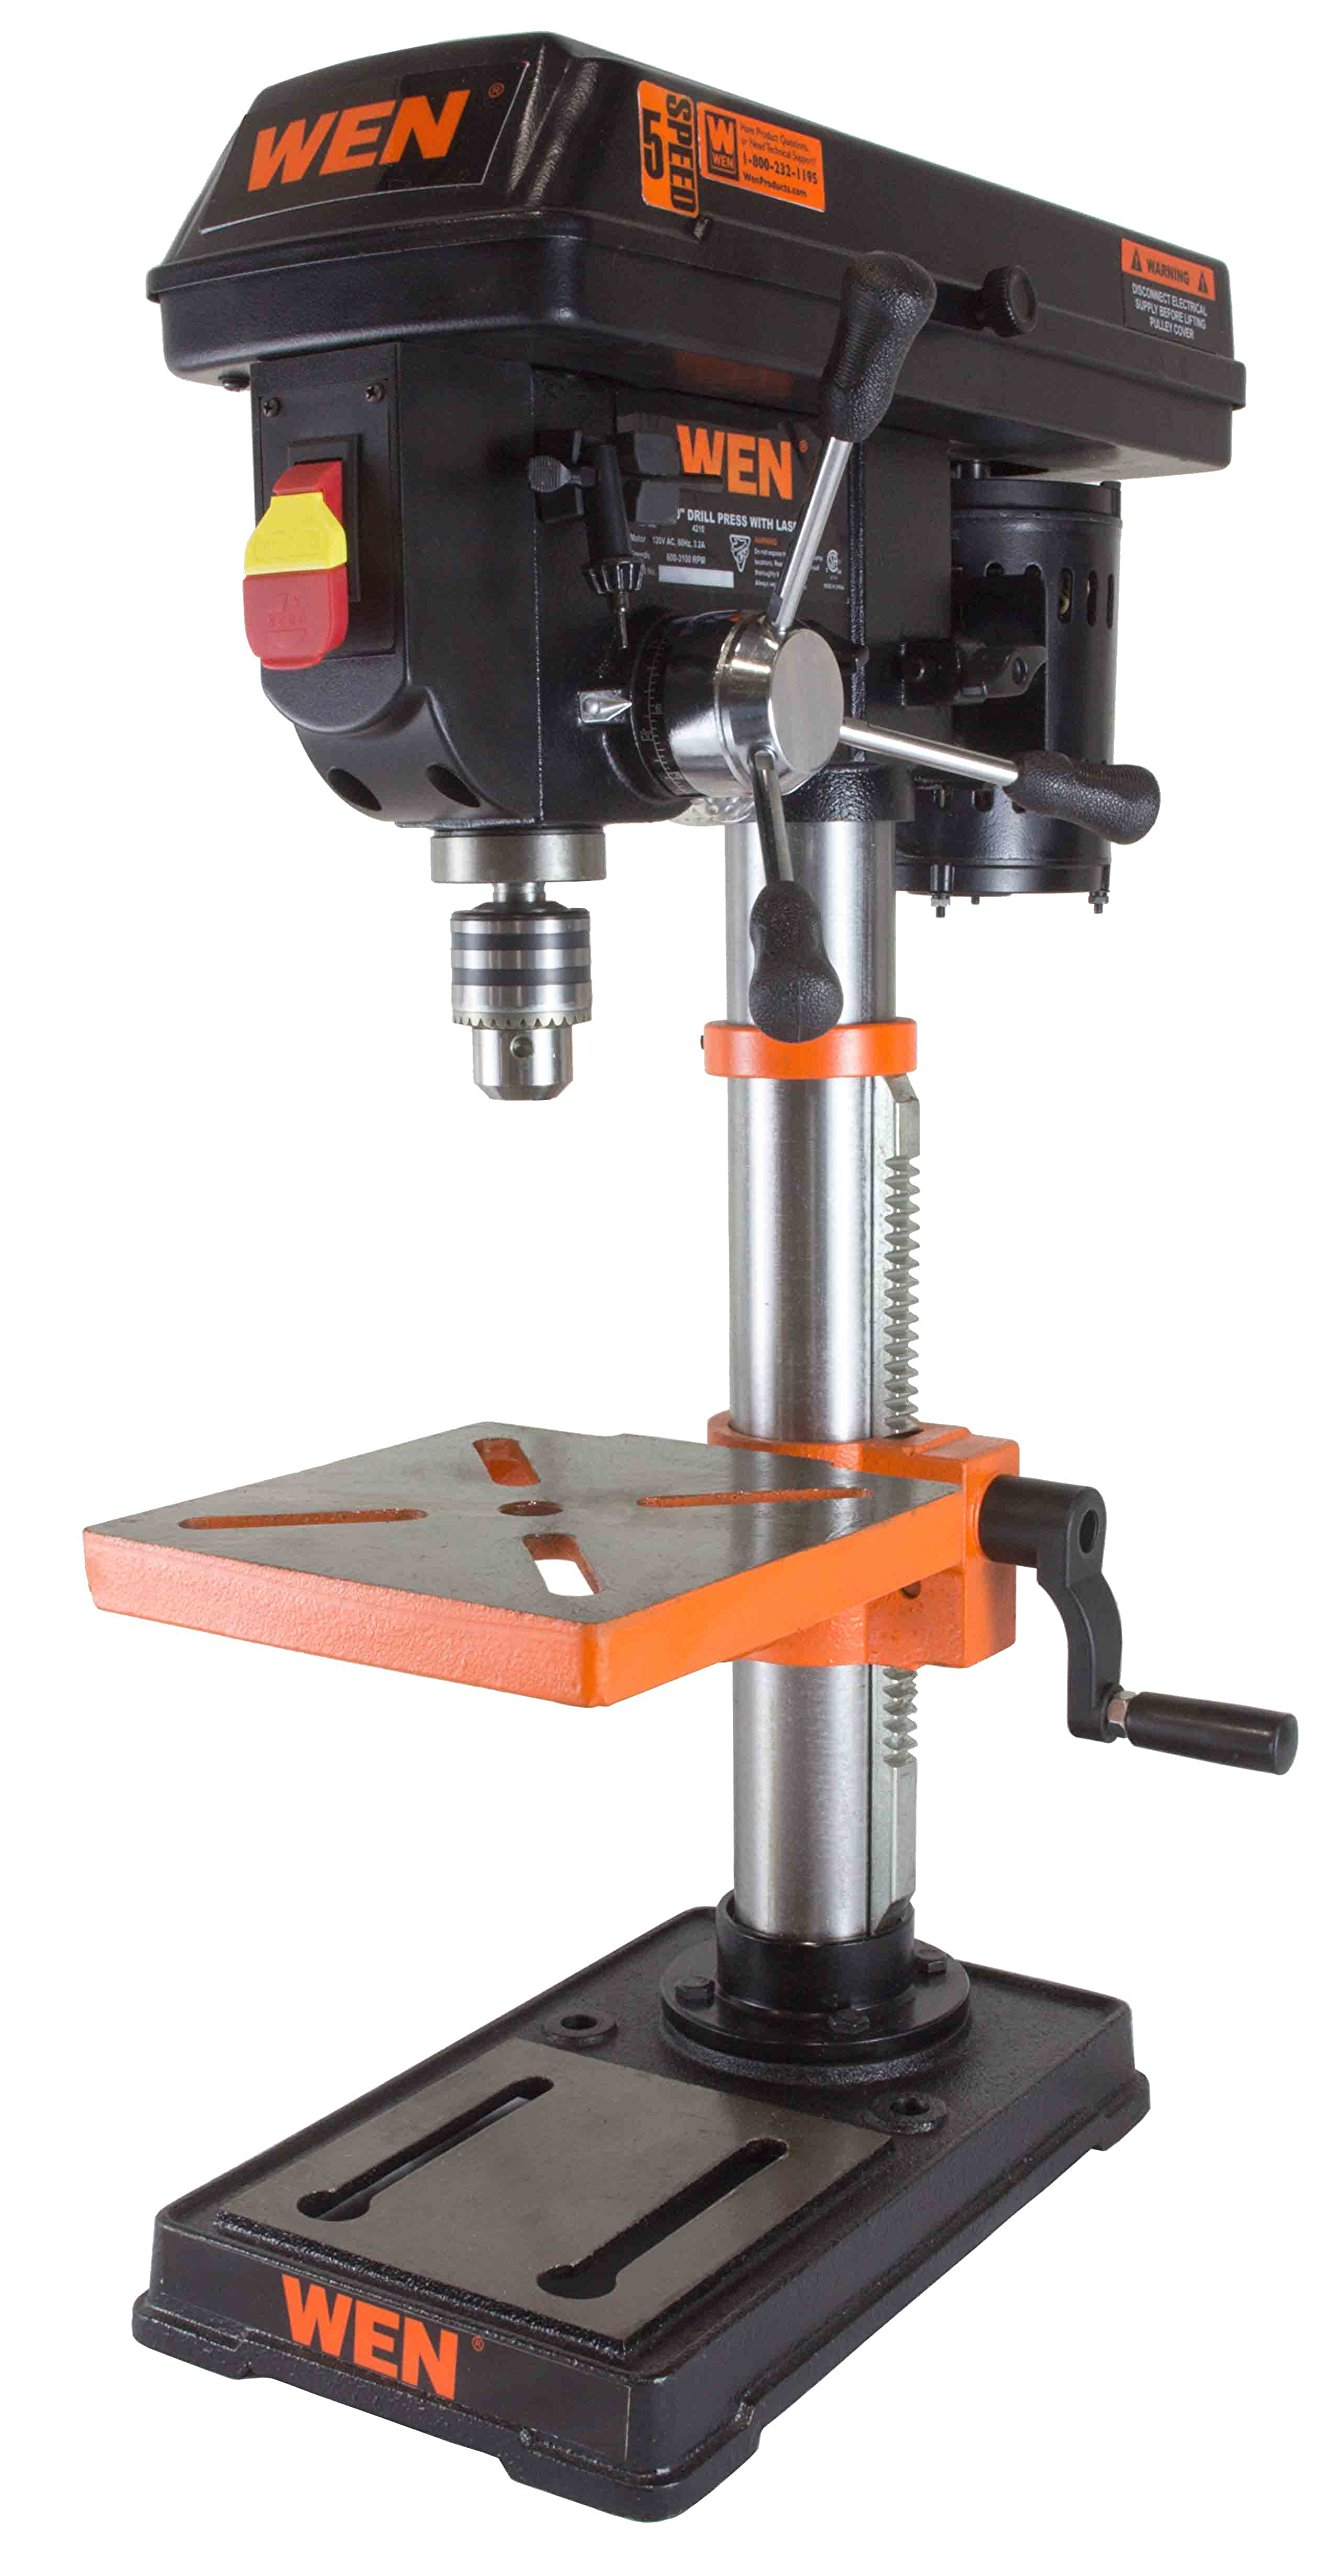 WEN 4210 Drill Press with Laser, 10-Inch by WEN